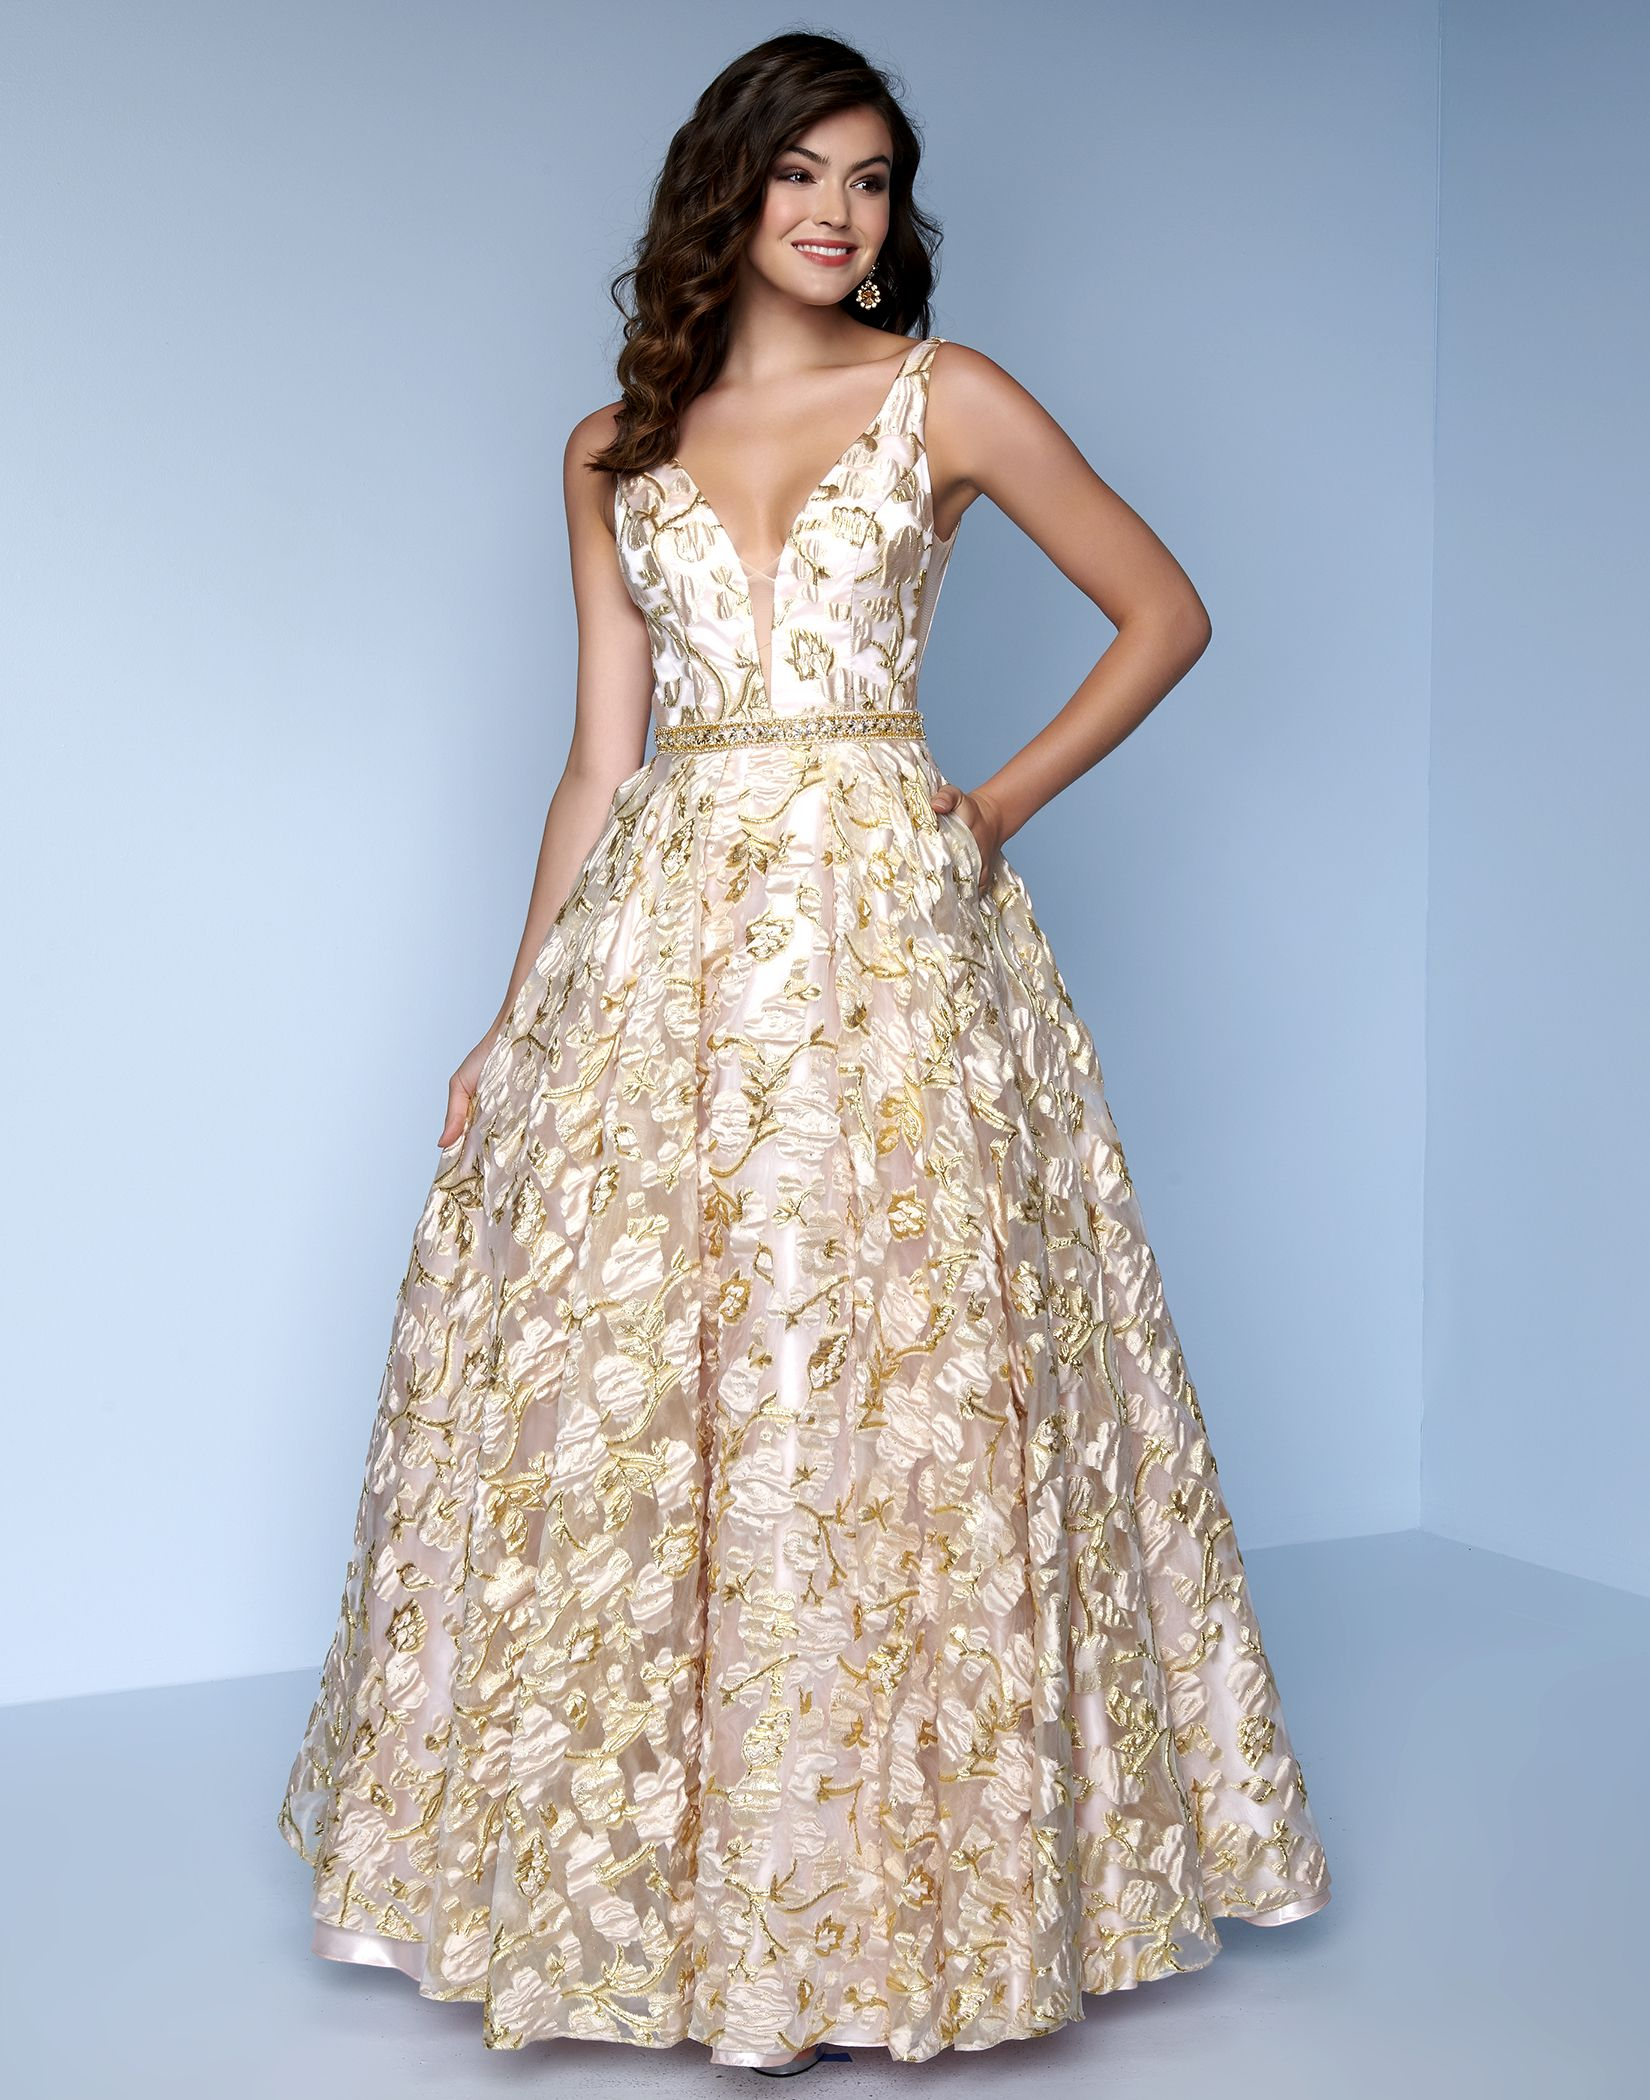 592b50bc906b5 New Jersey - Prom Dresses 2019, Prom Dress new jersey, Wedding Dresses,  Sweet Sixteen, Quinceanera Dresses, Bridal Gown, Bridesmaid Dresses, ...